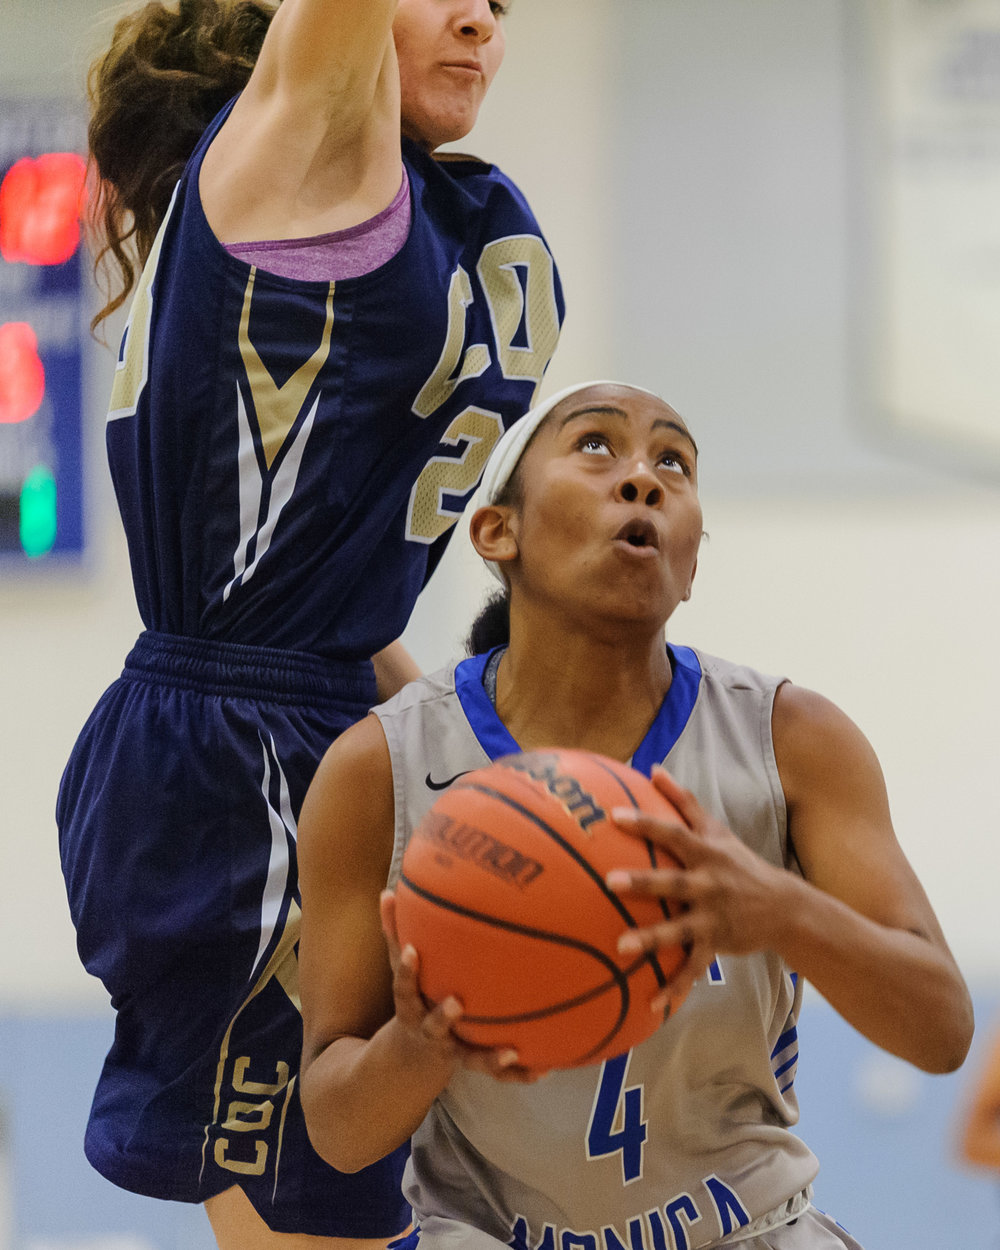 Lisa Hall (4) of Santa Monica College drives into the lane for a layup. The Santa Monica College Corsairs lose the game 108-70 to the College of the Canyons Cougars. The game was held at the SMC Pavilion at the Santa Monica College Main Campus in Santa Monica, Calif.. February 10, 2018. (Photo by: Justin Han/Corsair Staff)